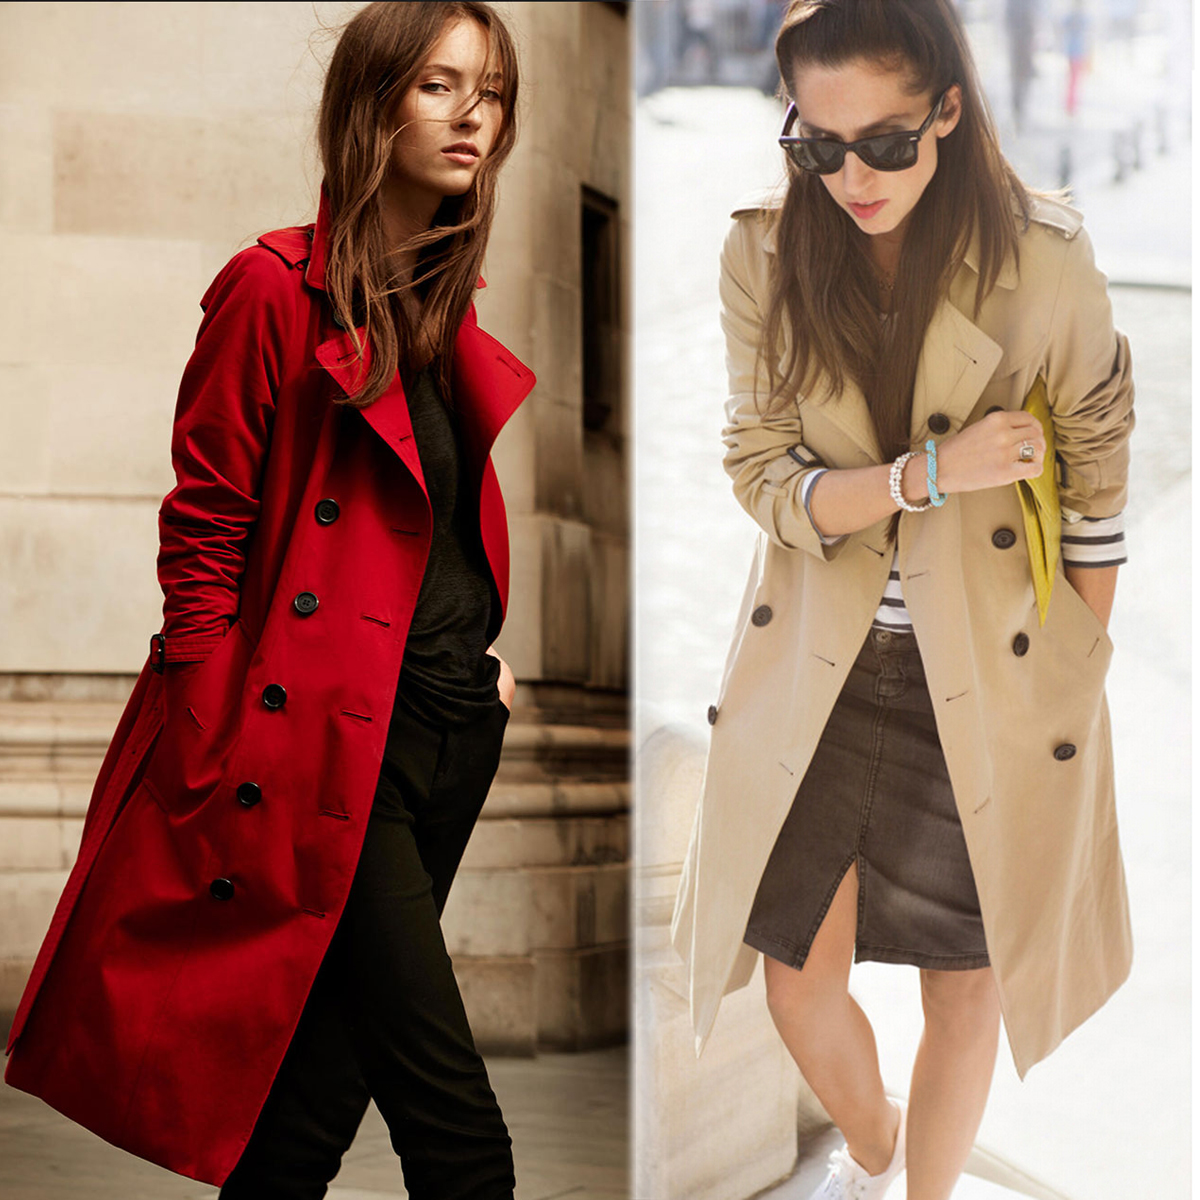 Jazzevar Autumn New High Fashion Brand Woman Classic Double Breasted Trench Coat Waterproof Raincoat Business Outerwear #3